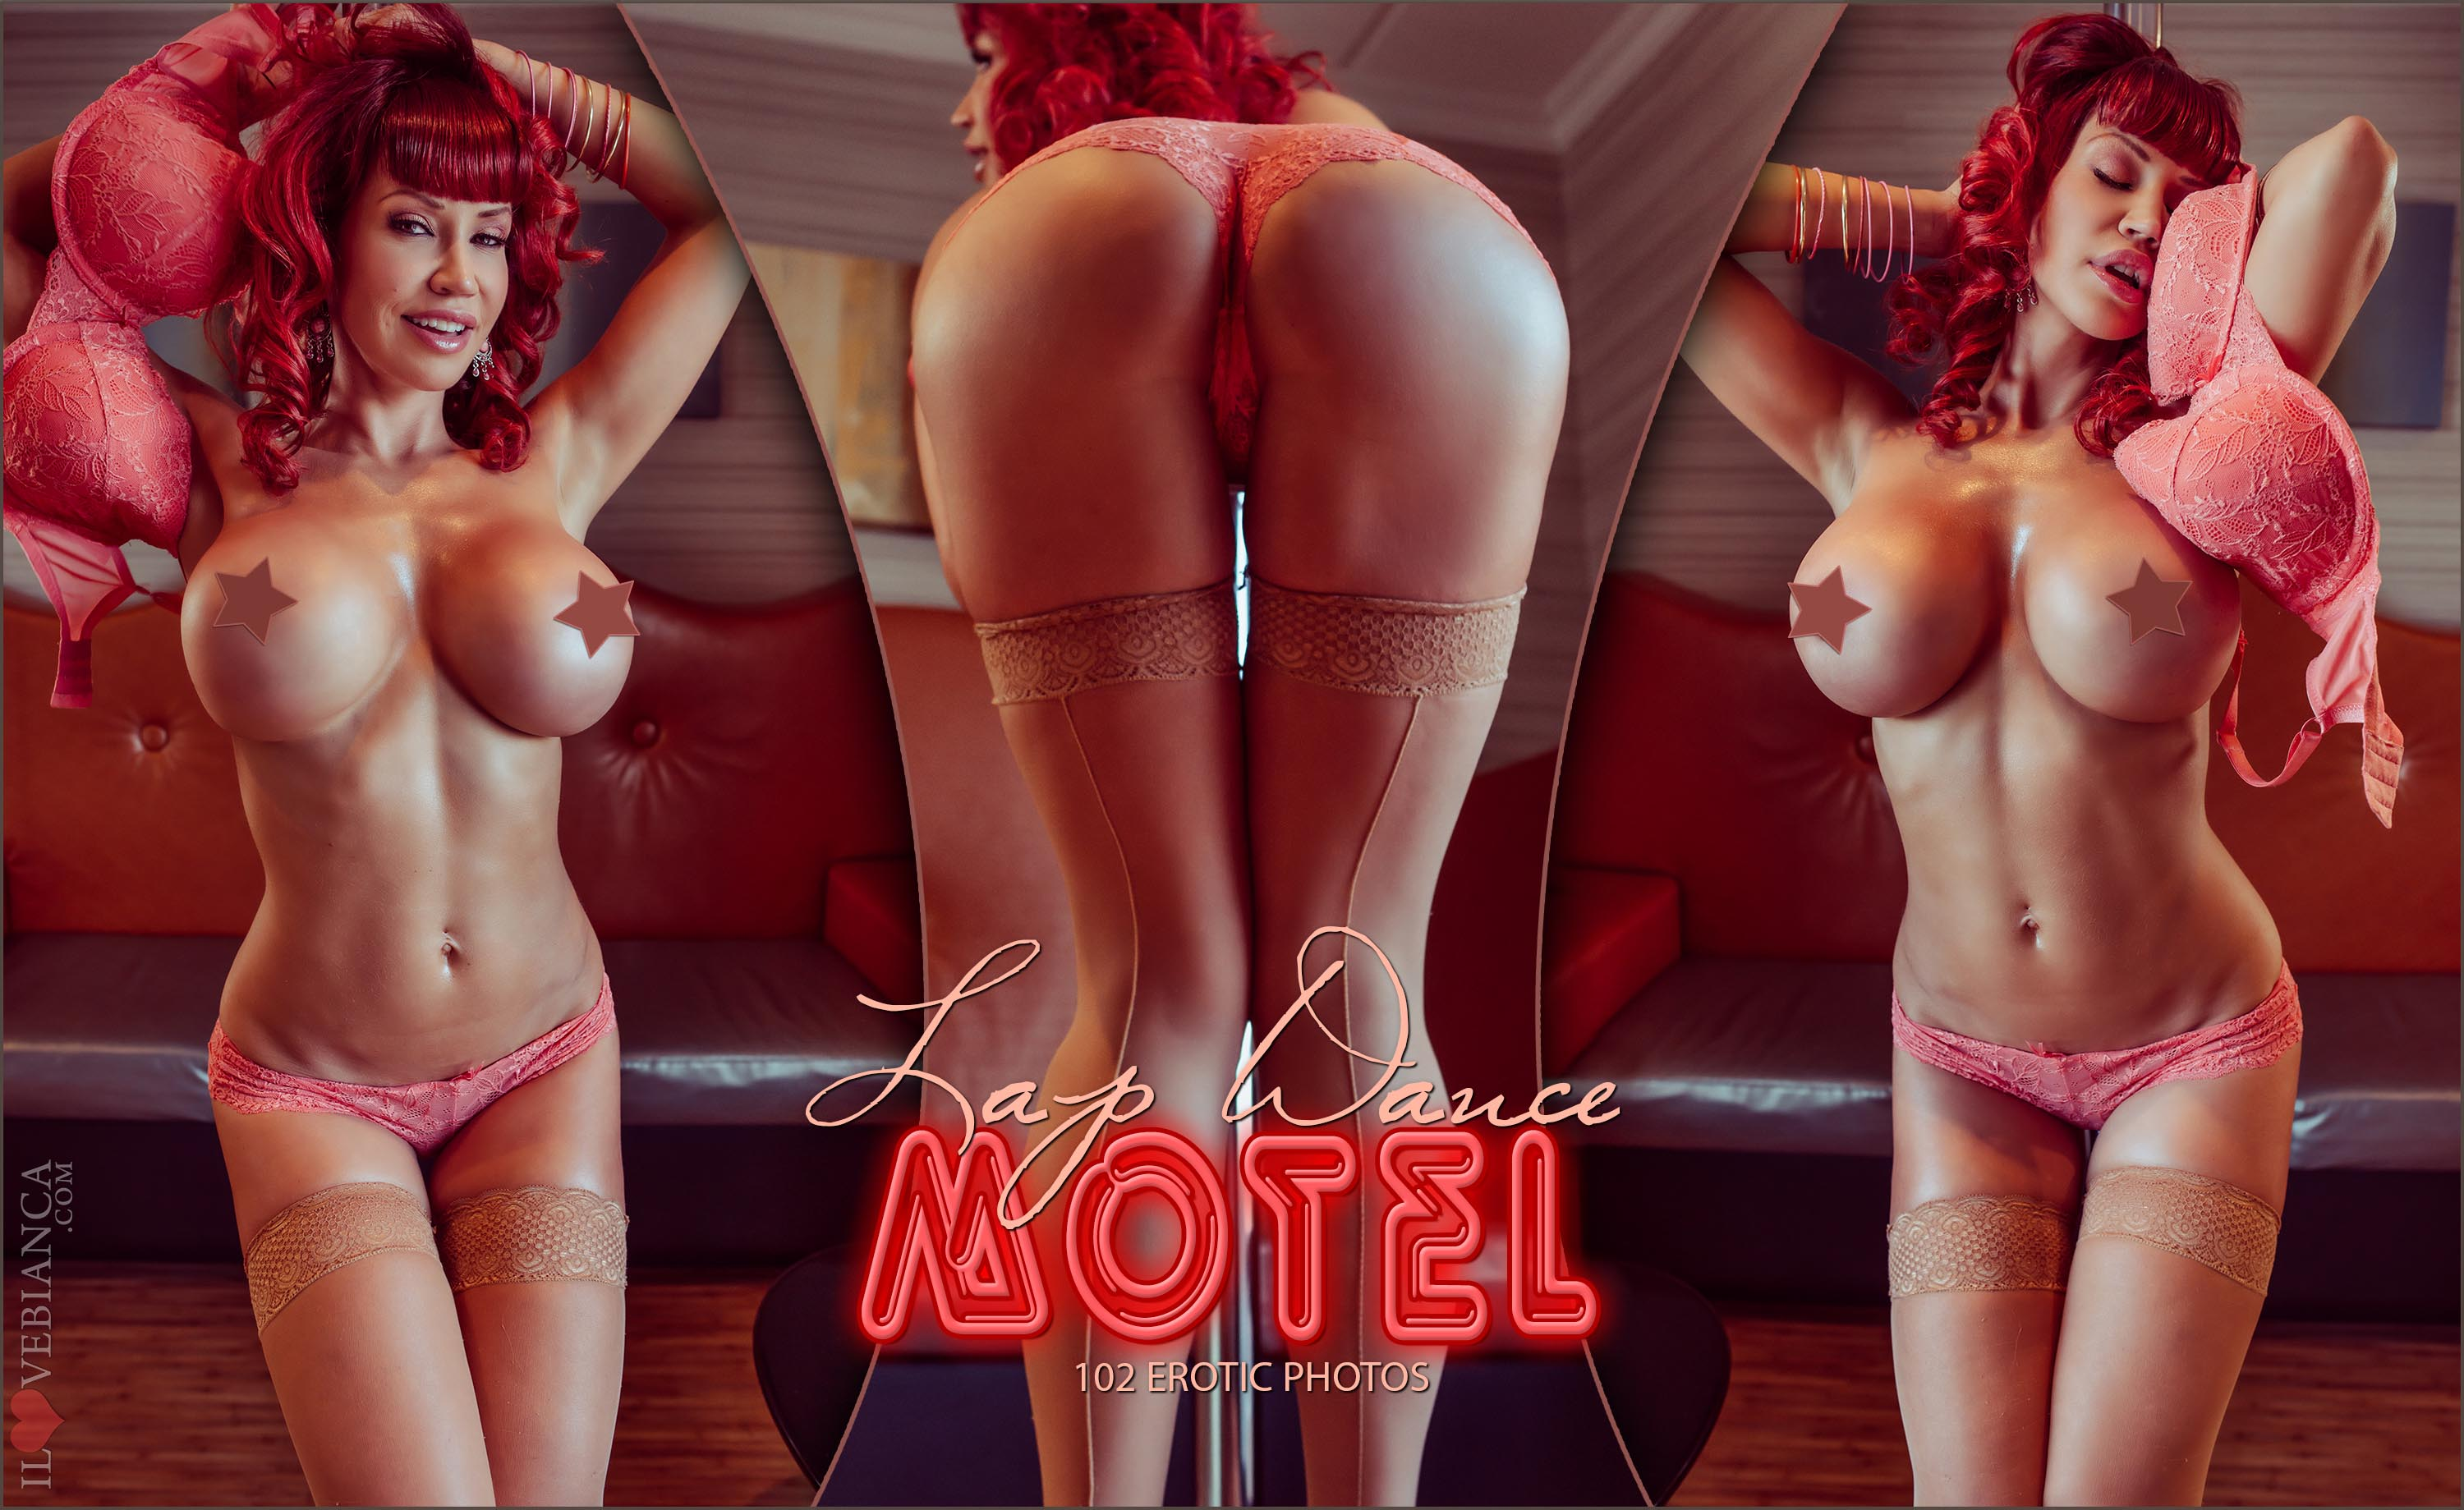 02 lap dance motel covers 02